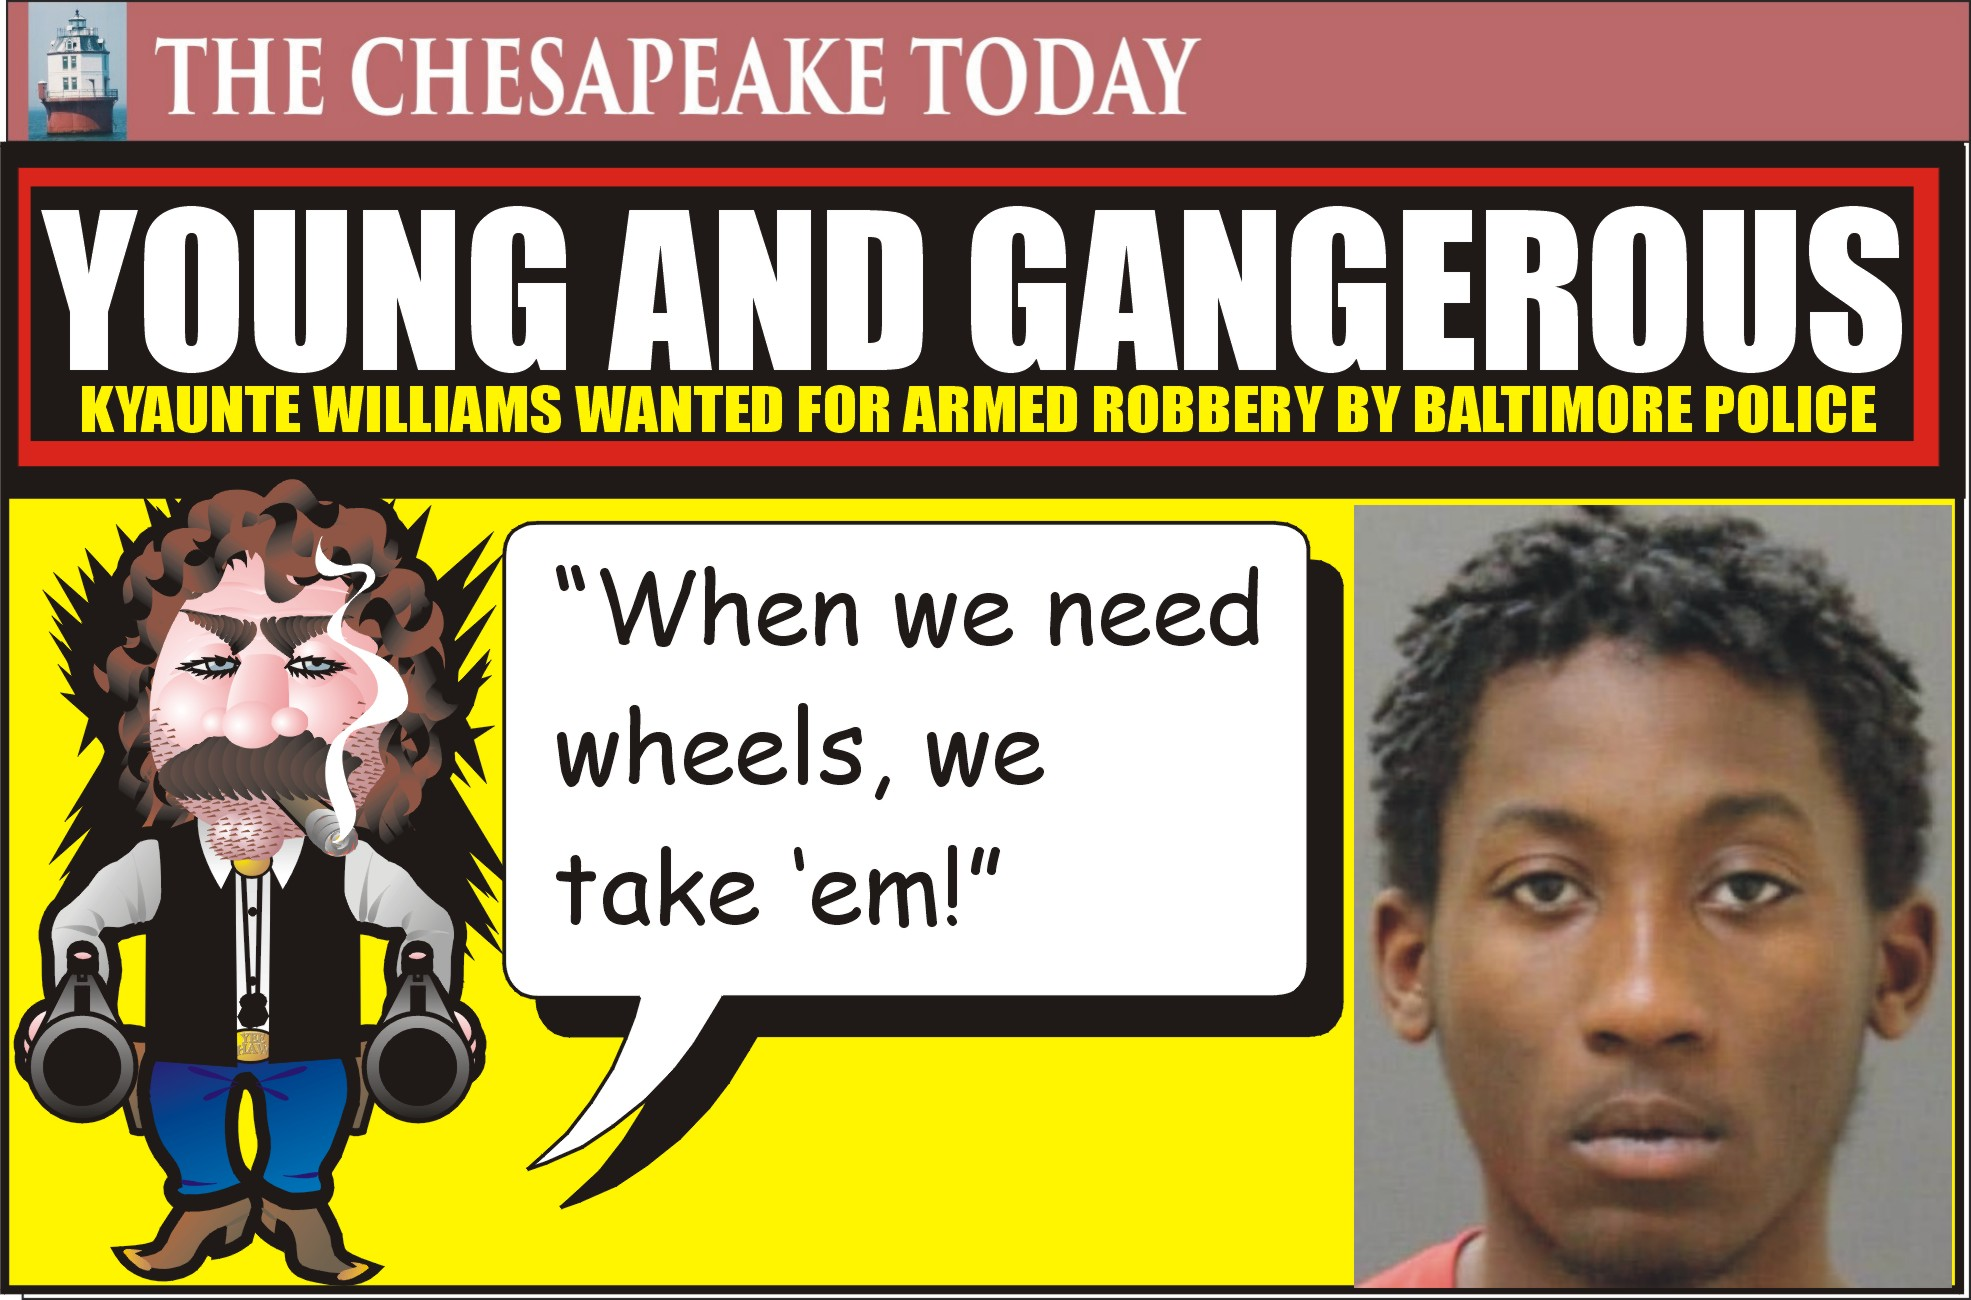 BALTIMORE CITY POLICE BEAT: Drug Dealer 'Wiley Coyote' Kyaunte Williams Sought for Armed Robbery; Got the Plea Deal of a Lifetime from Harford Prosecutor